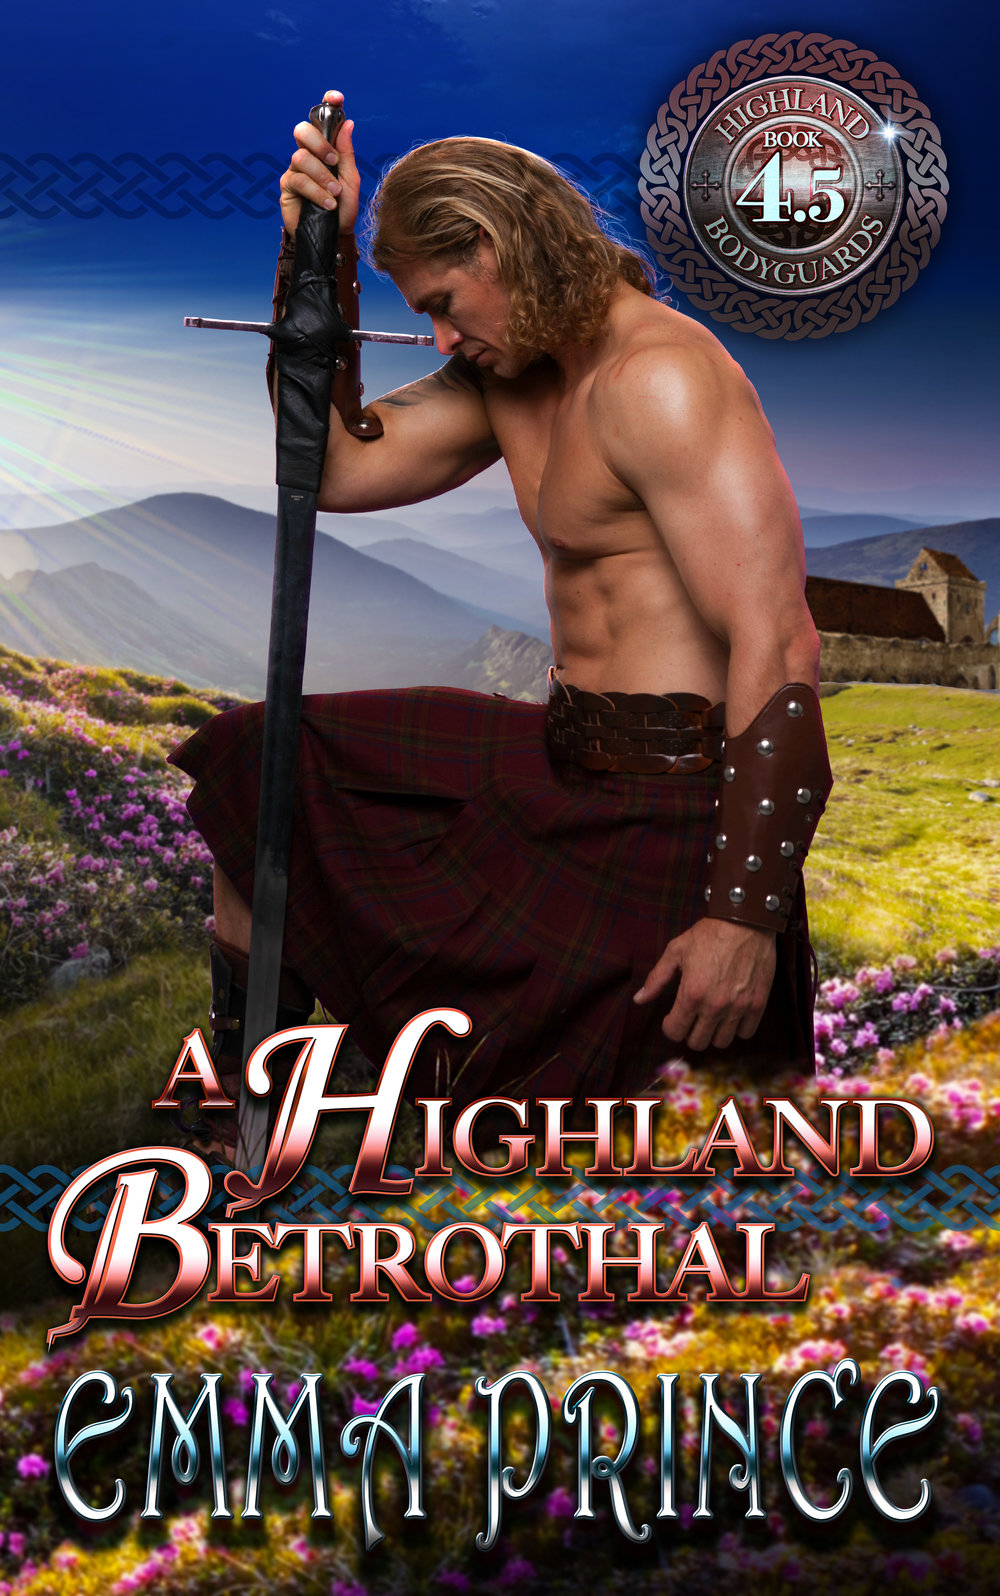 A Highland Betrothal (Book 4.5)